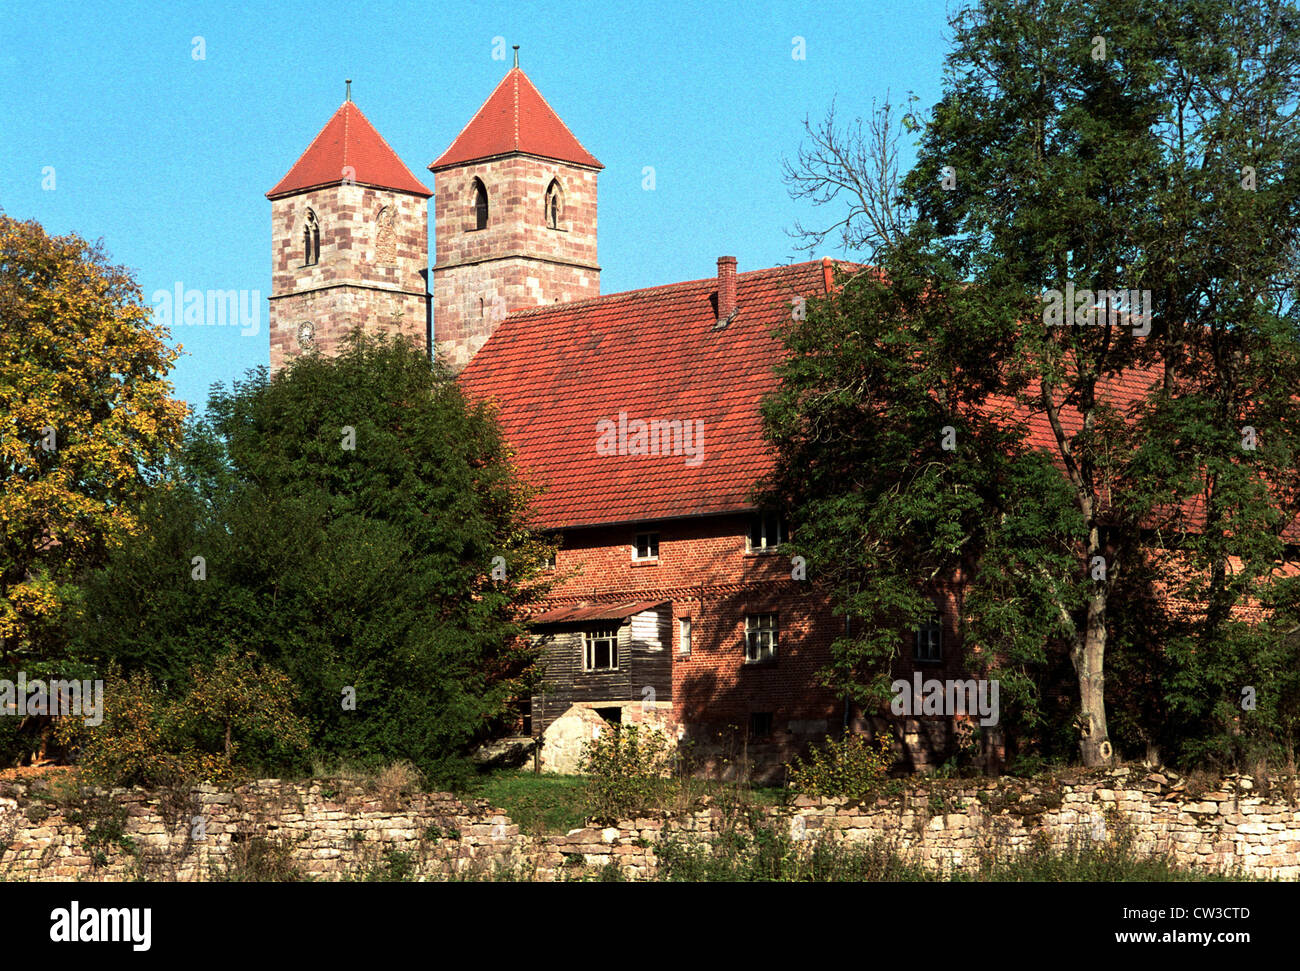 Vessra monastery, museum and monument - Stock Image